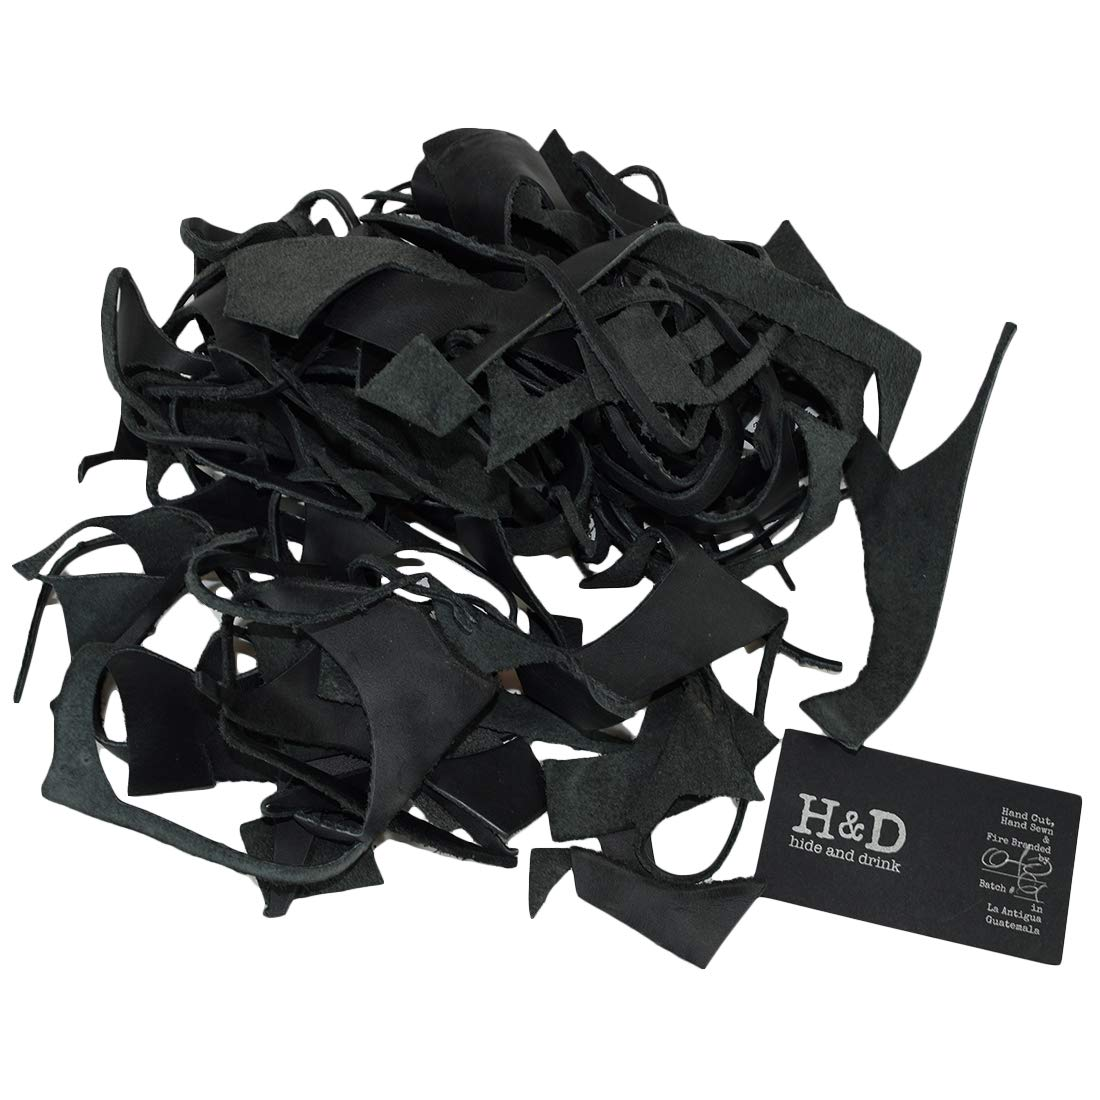 Amazon.com: Hide & Drink, Cow Leather Chips & Scraps, Trimming Pieces, Craft & Workshop (8 Ounce) : Charcoal Black